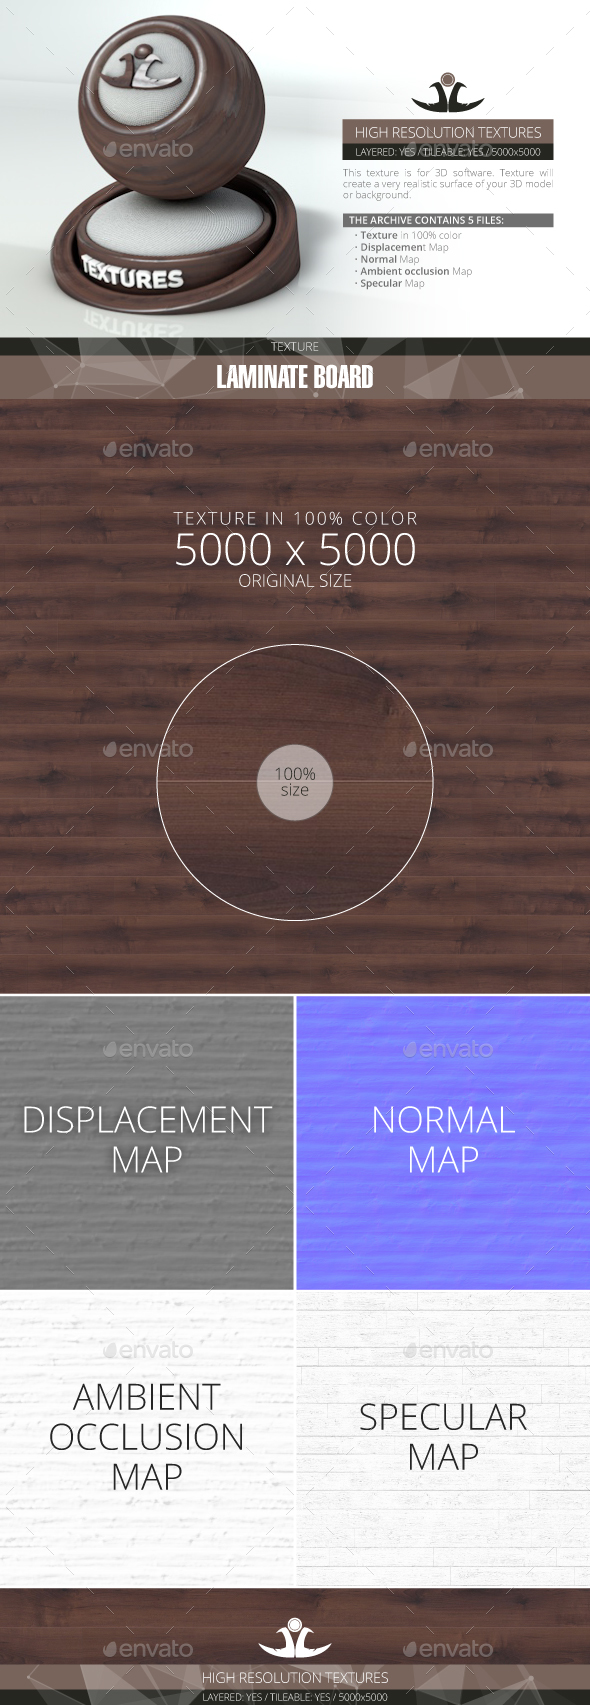 Laminate Board 56 - 3DOcean Item for Sale